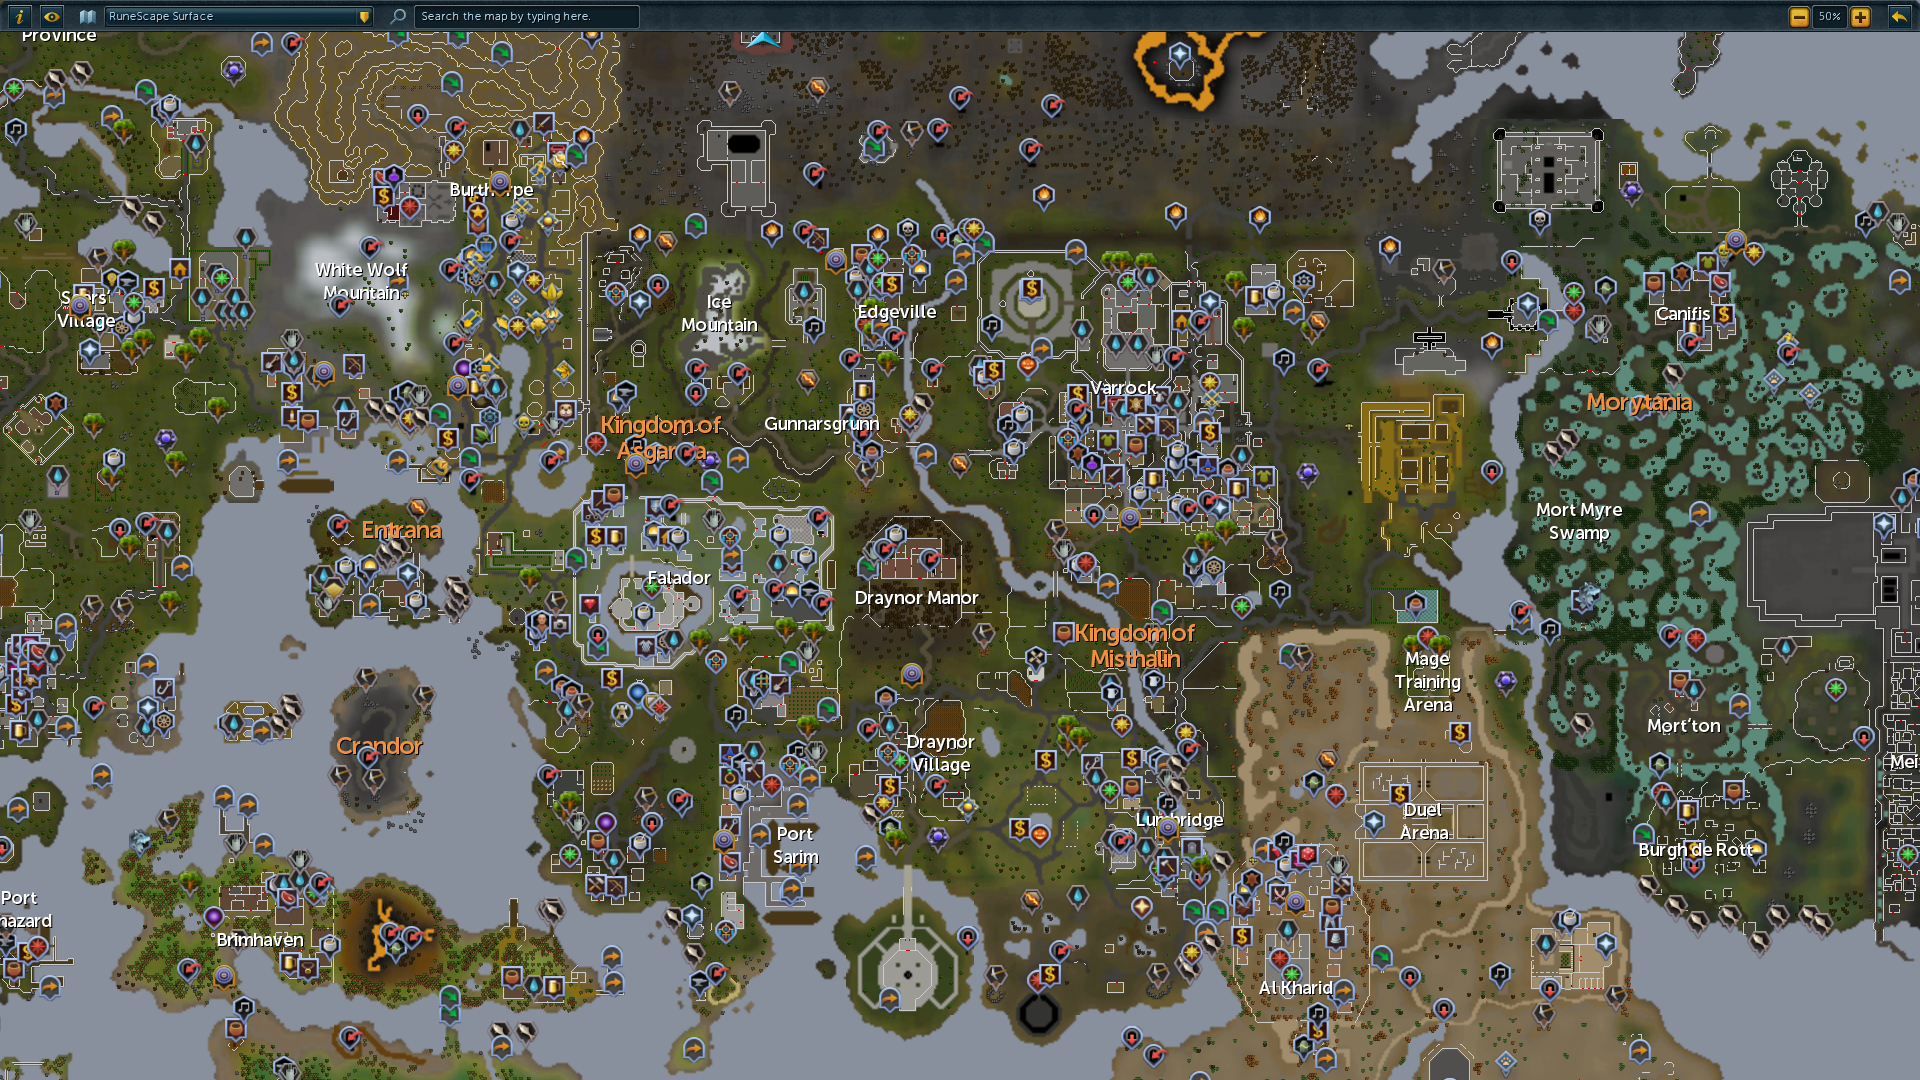 osrs world map